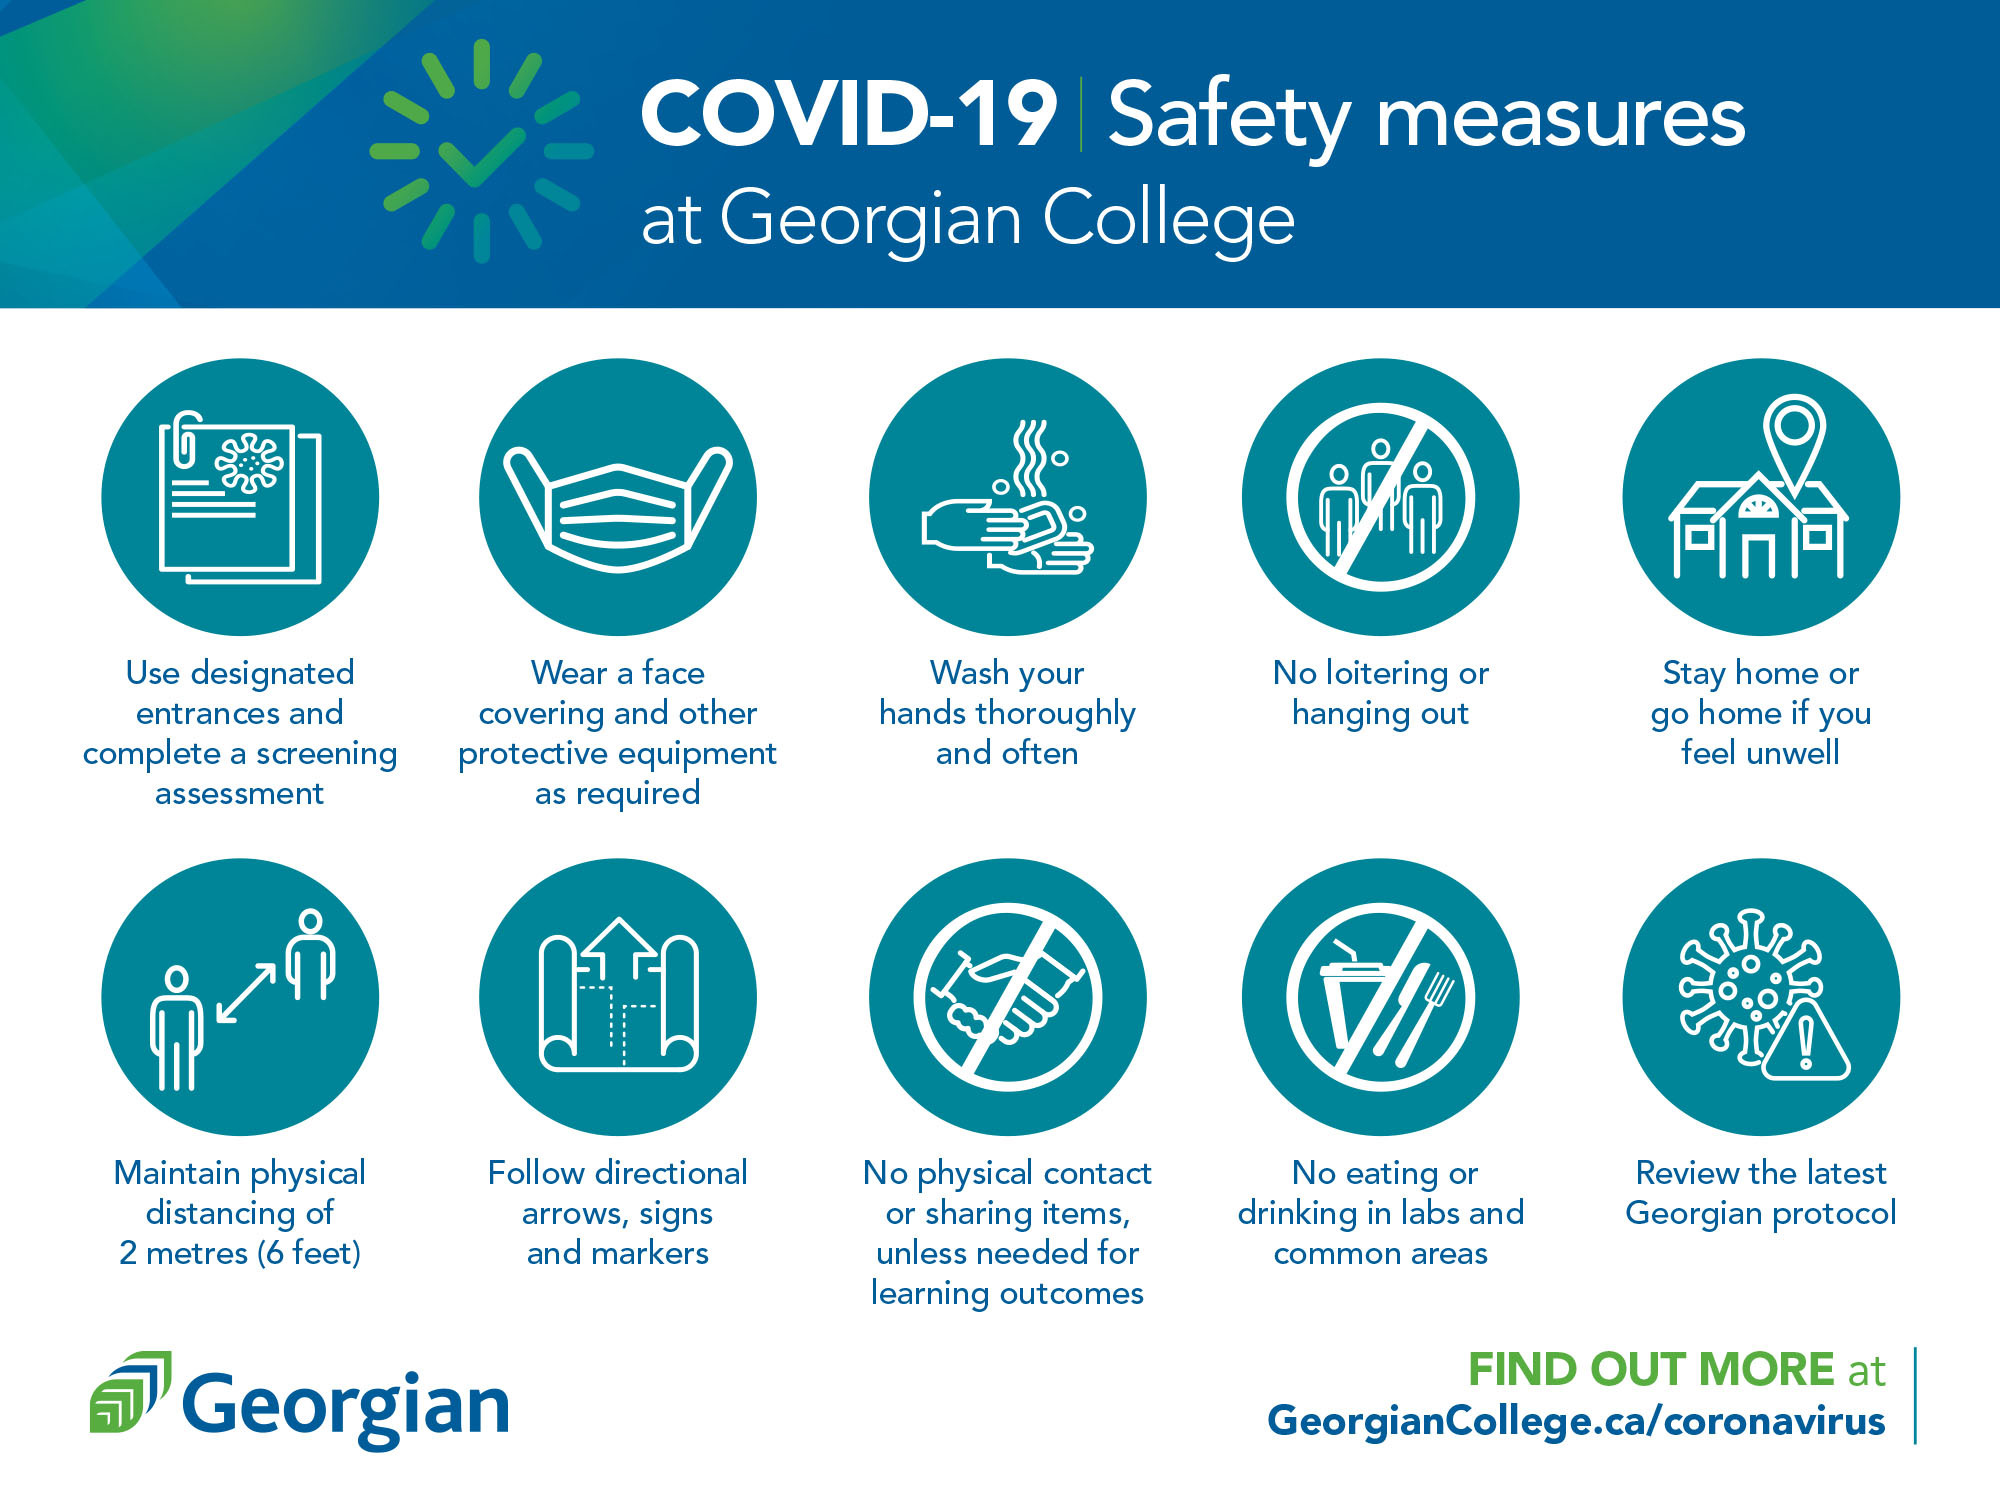 COVID-19 safety measures at Georgian College